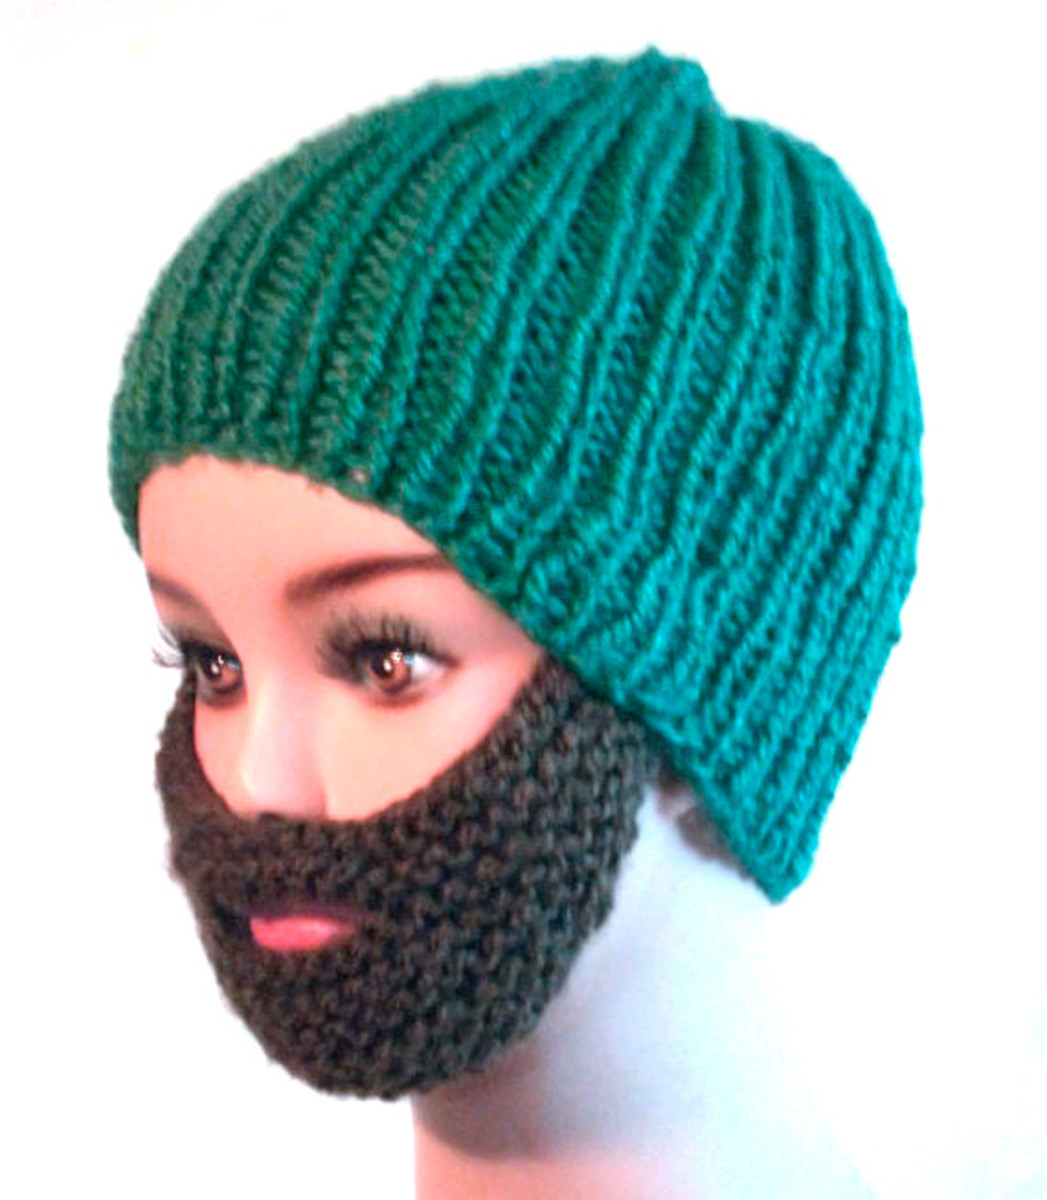 "Imagine wearing this down the street to start a new fashion trend! You'll be the biggest dolt around before you can say ""knitted beards just don't work""."